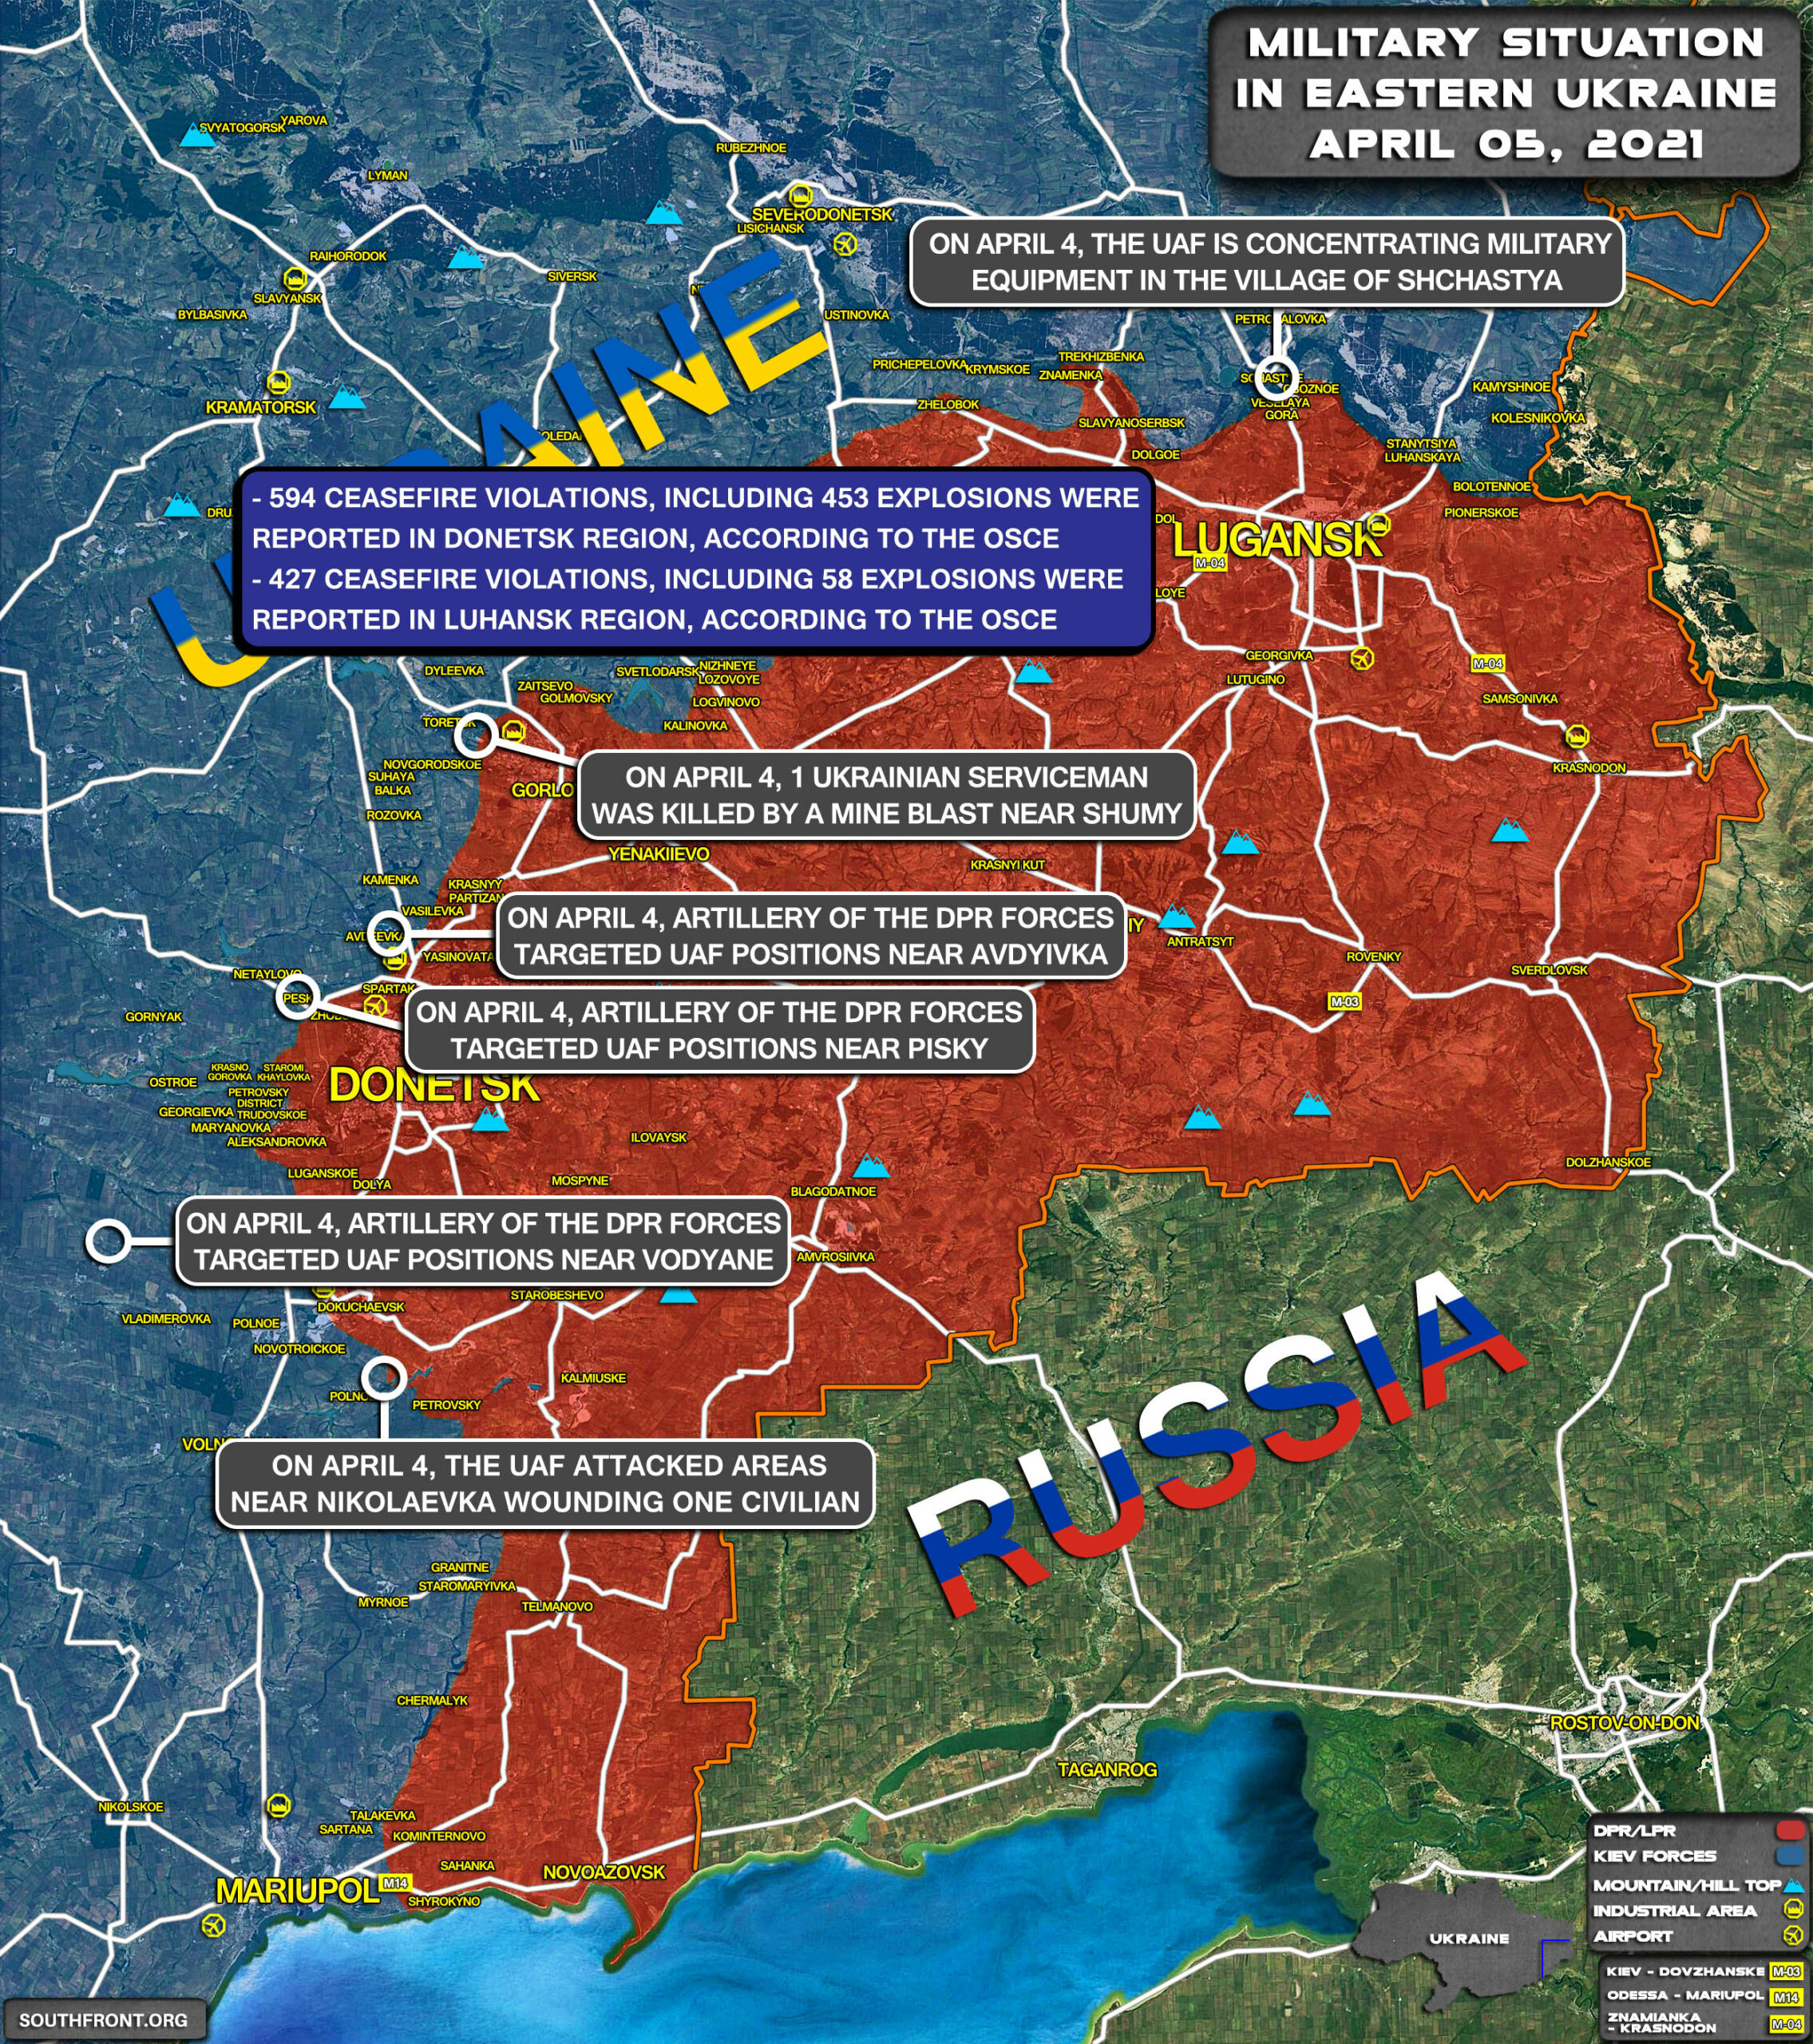 Kiev Continues On The War Path, Emboldened By False Promises. (Map Update)